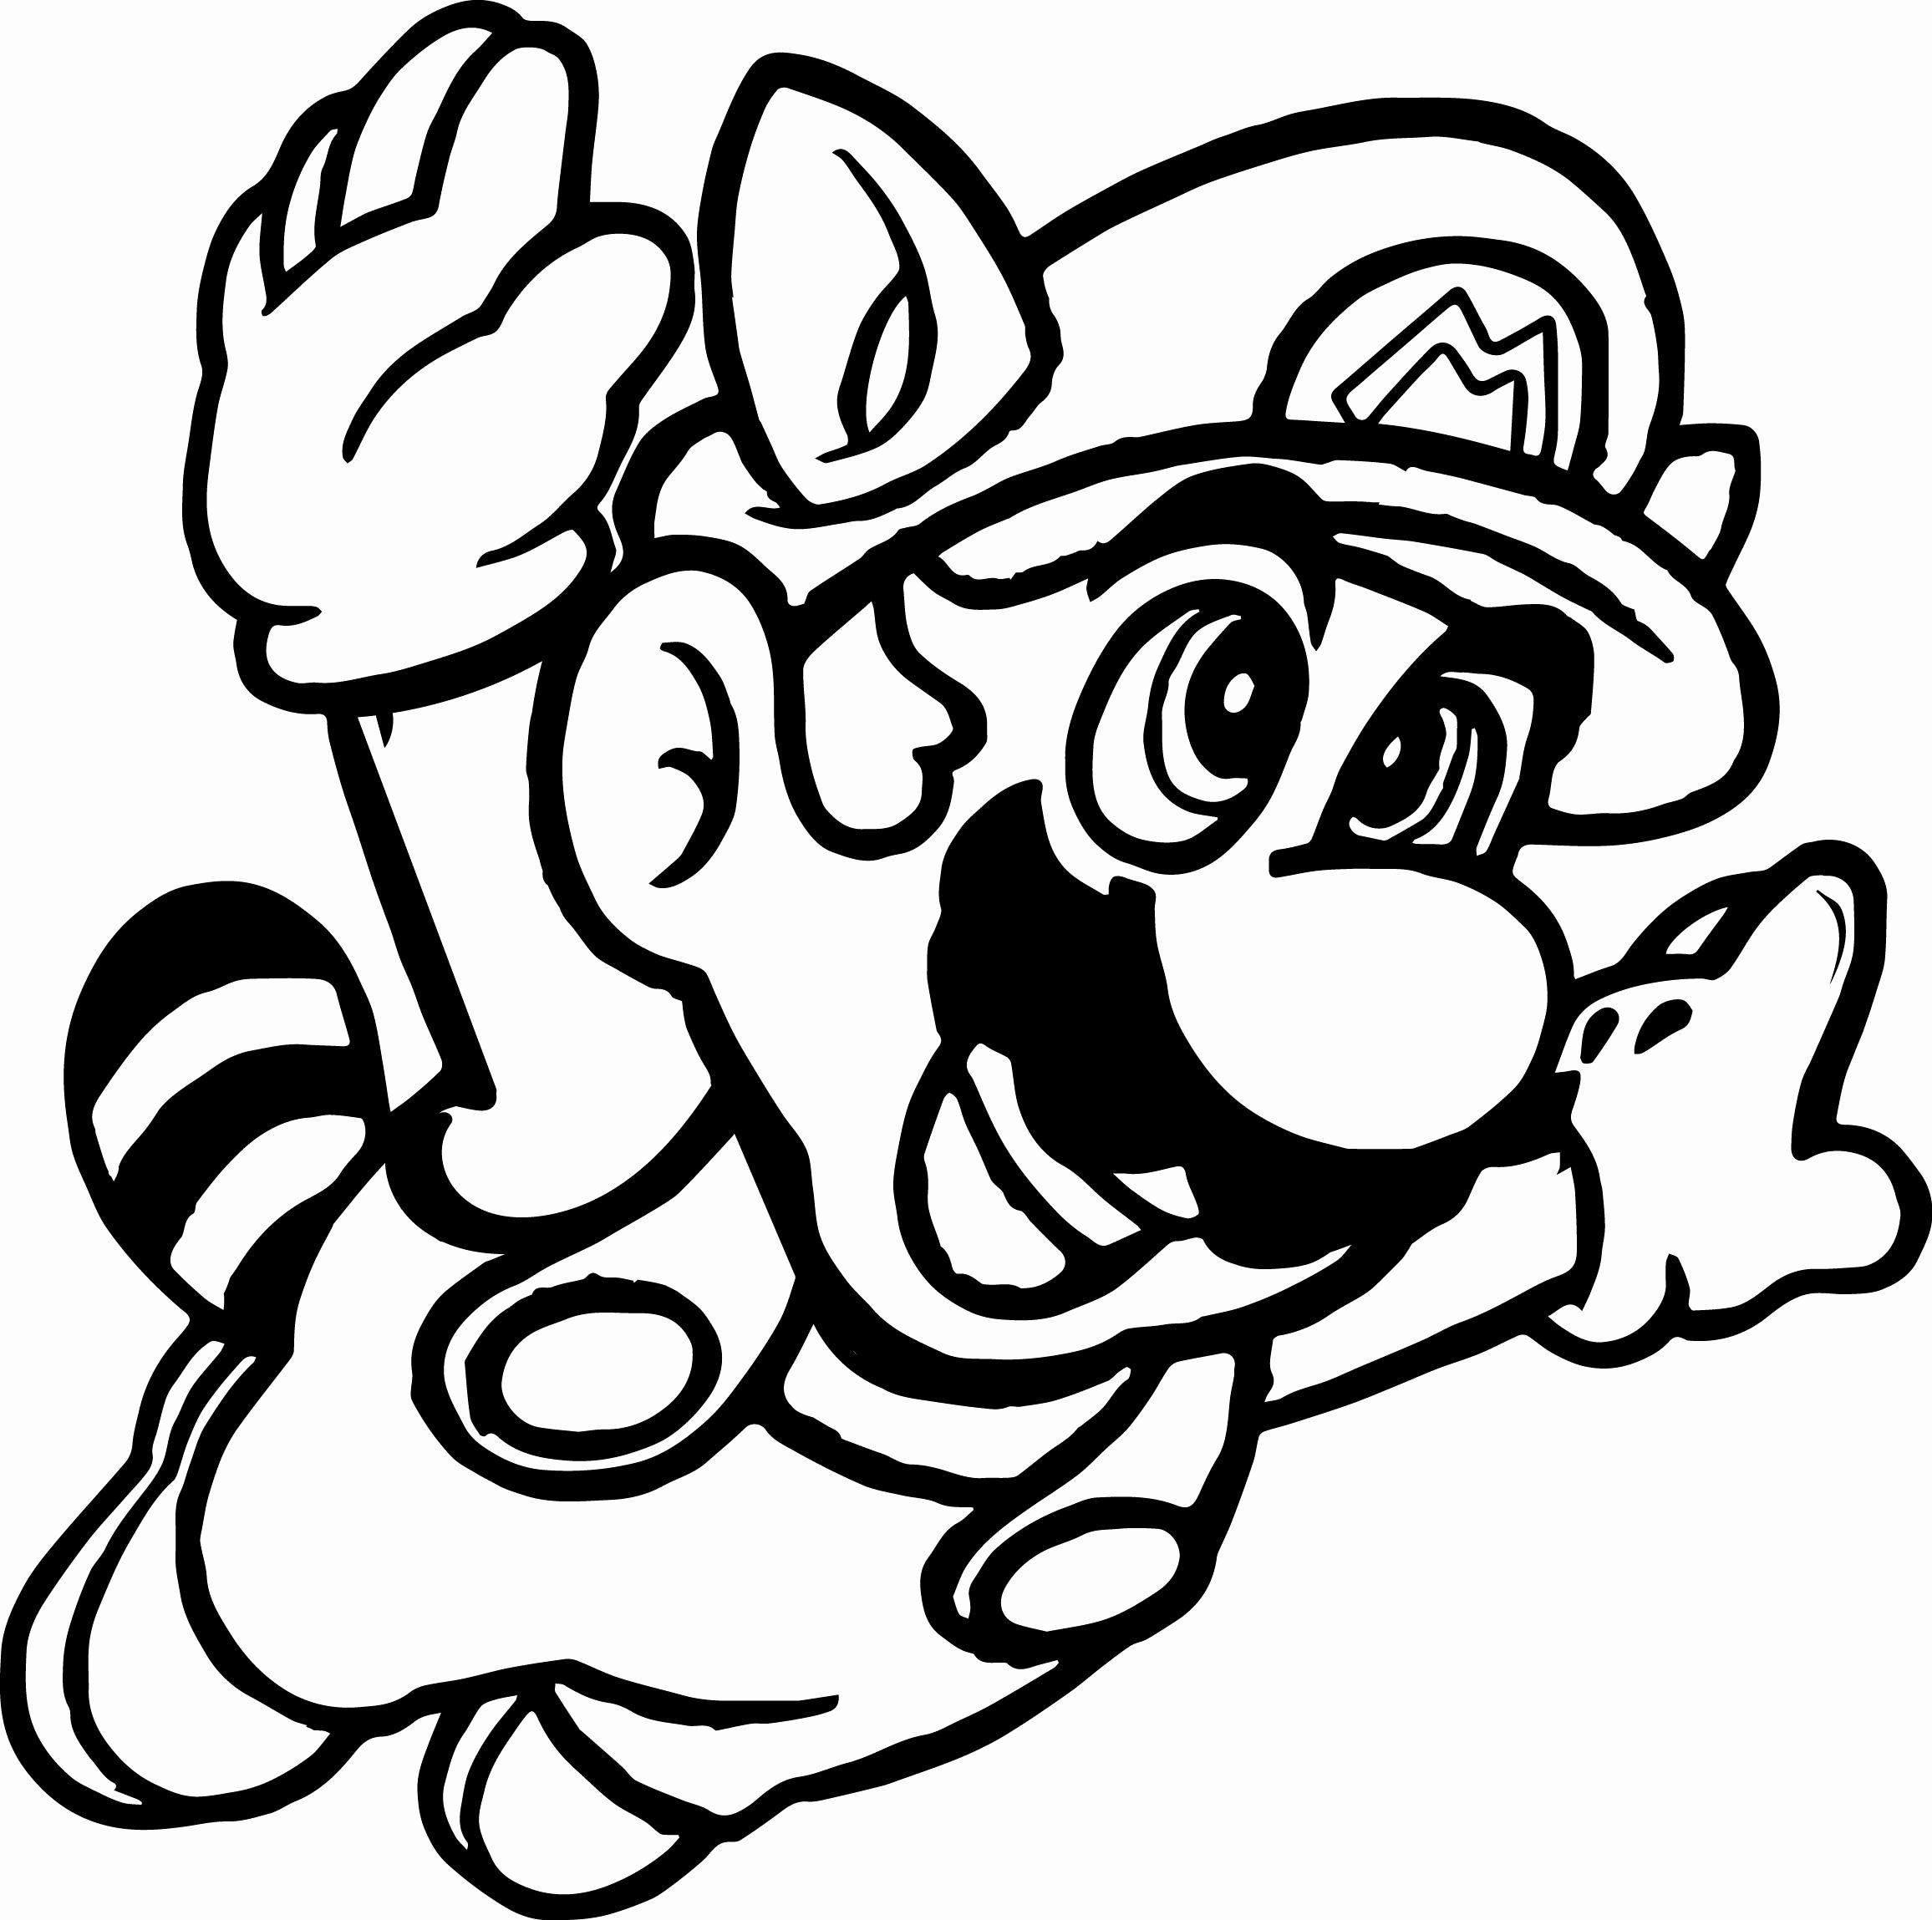 Mario Coloring Pages Printable Inspirational Mario Odyssey Coloring Pages Printable Mario Coloring Pages Super Mario Coloring Pages Coloring Pages